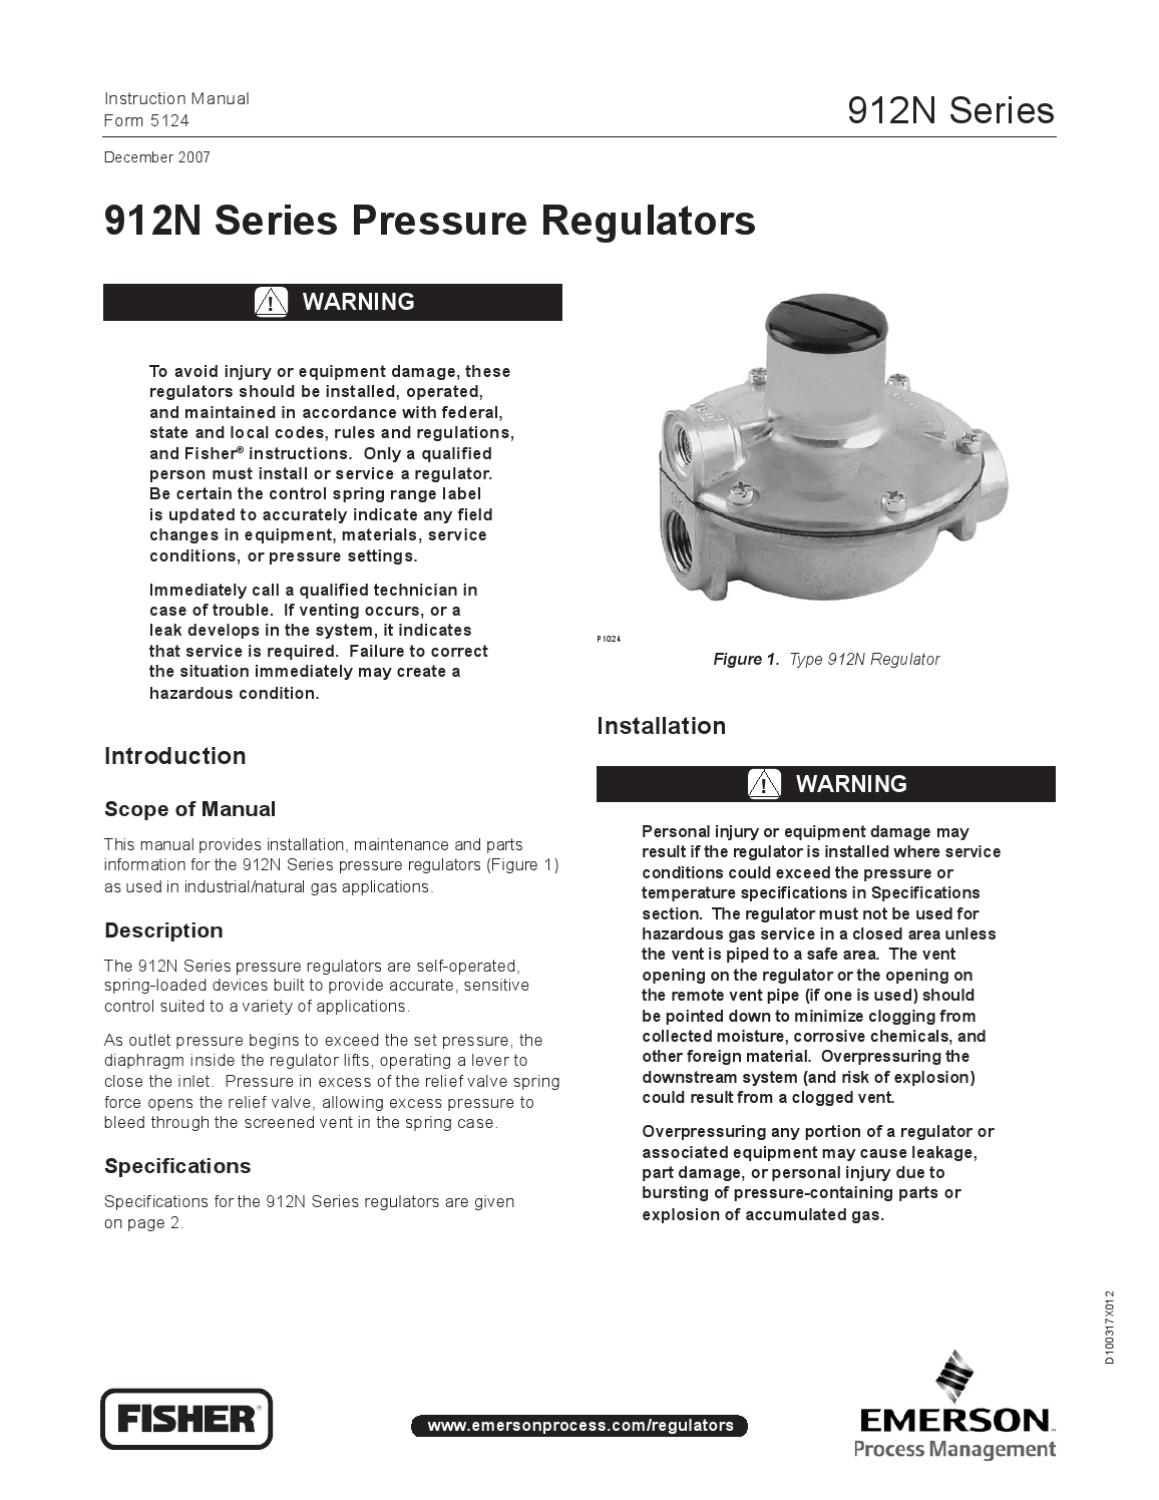 912 Instruction Manual by RMC Process Controls